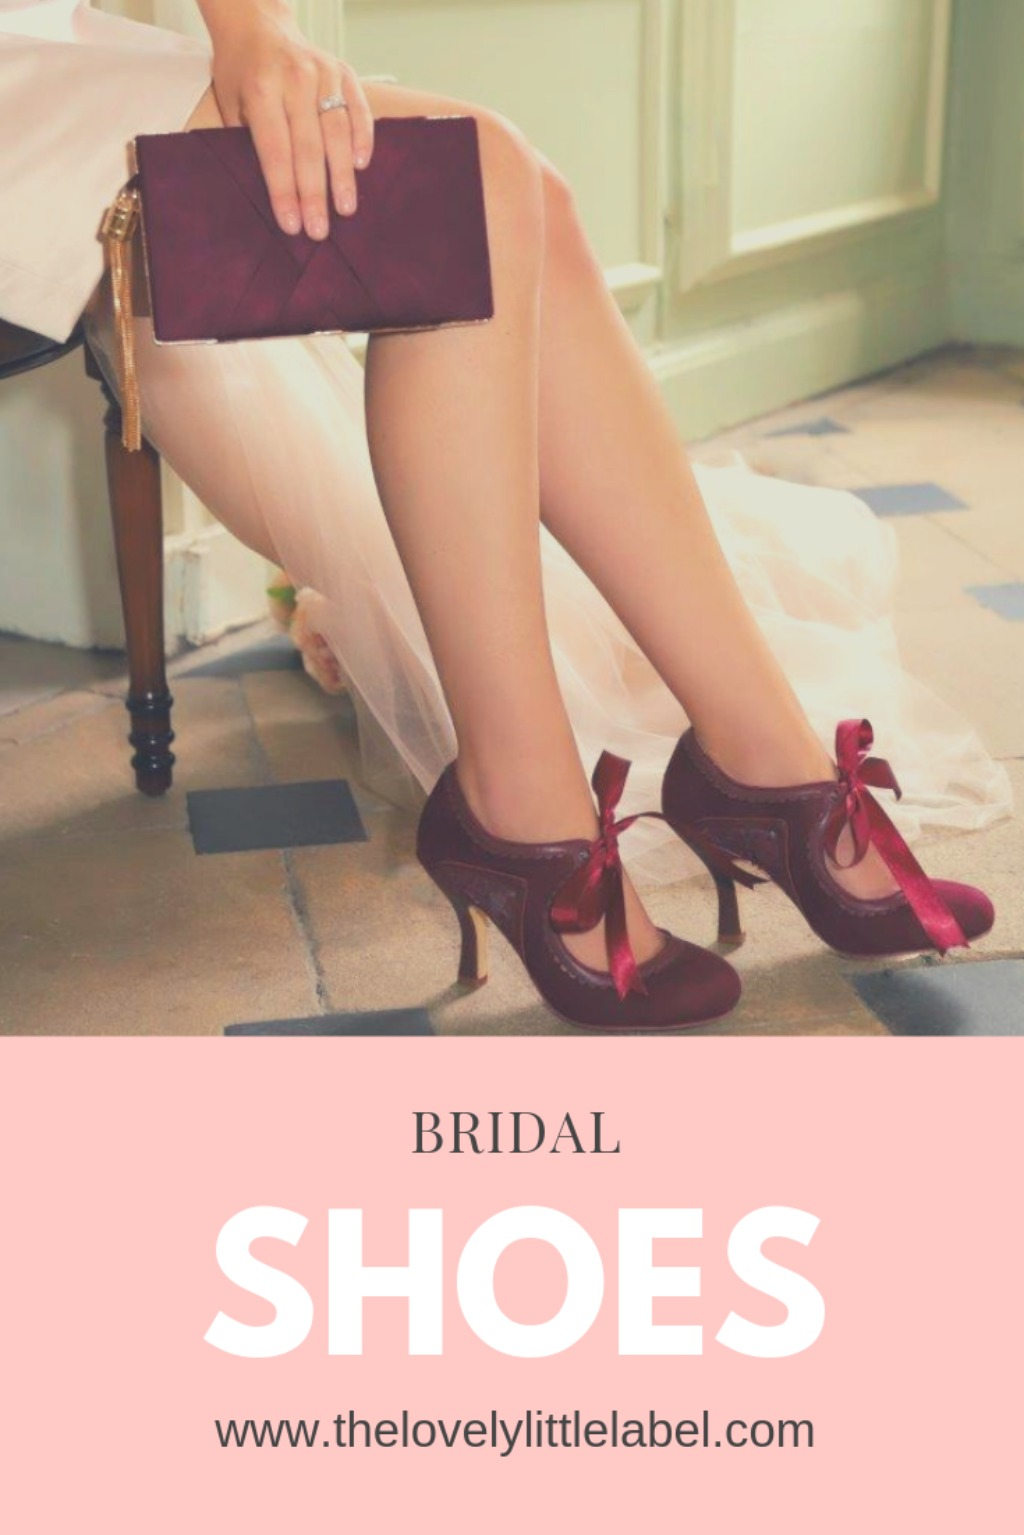 At The Lovely Little Label we believe Wedding shoes should make you feel good, not just because they look amazing but because they